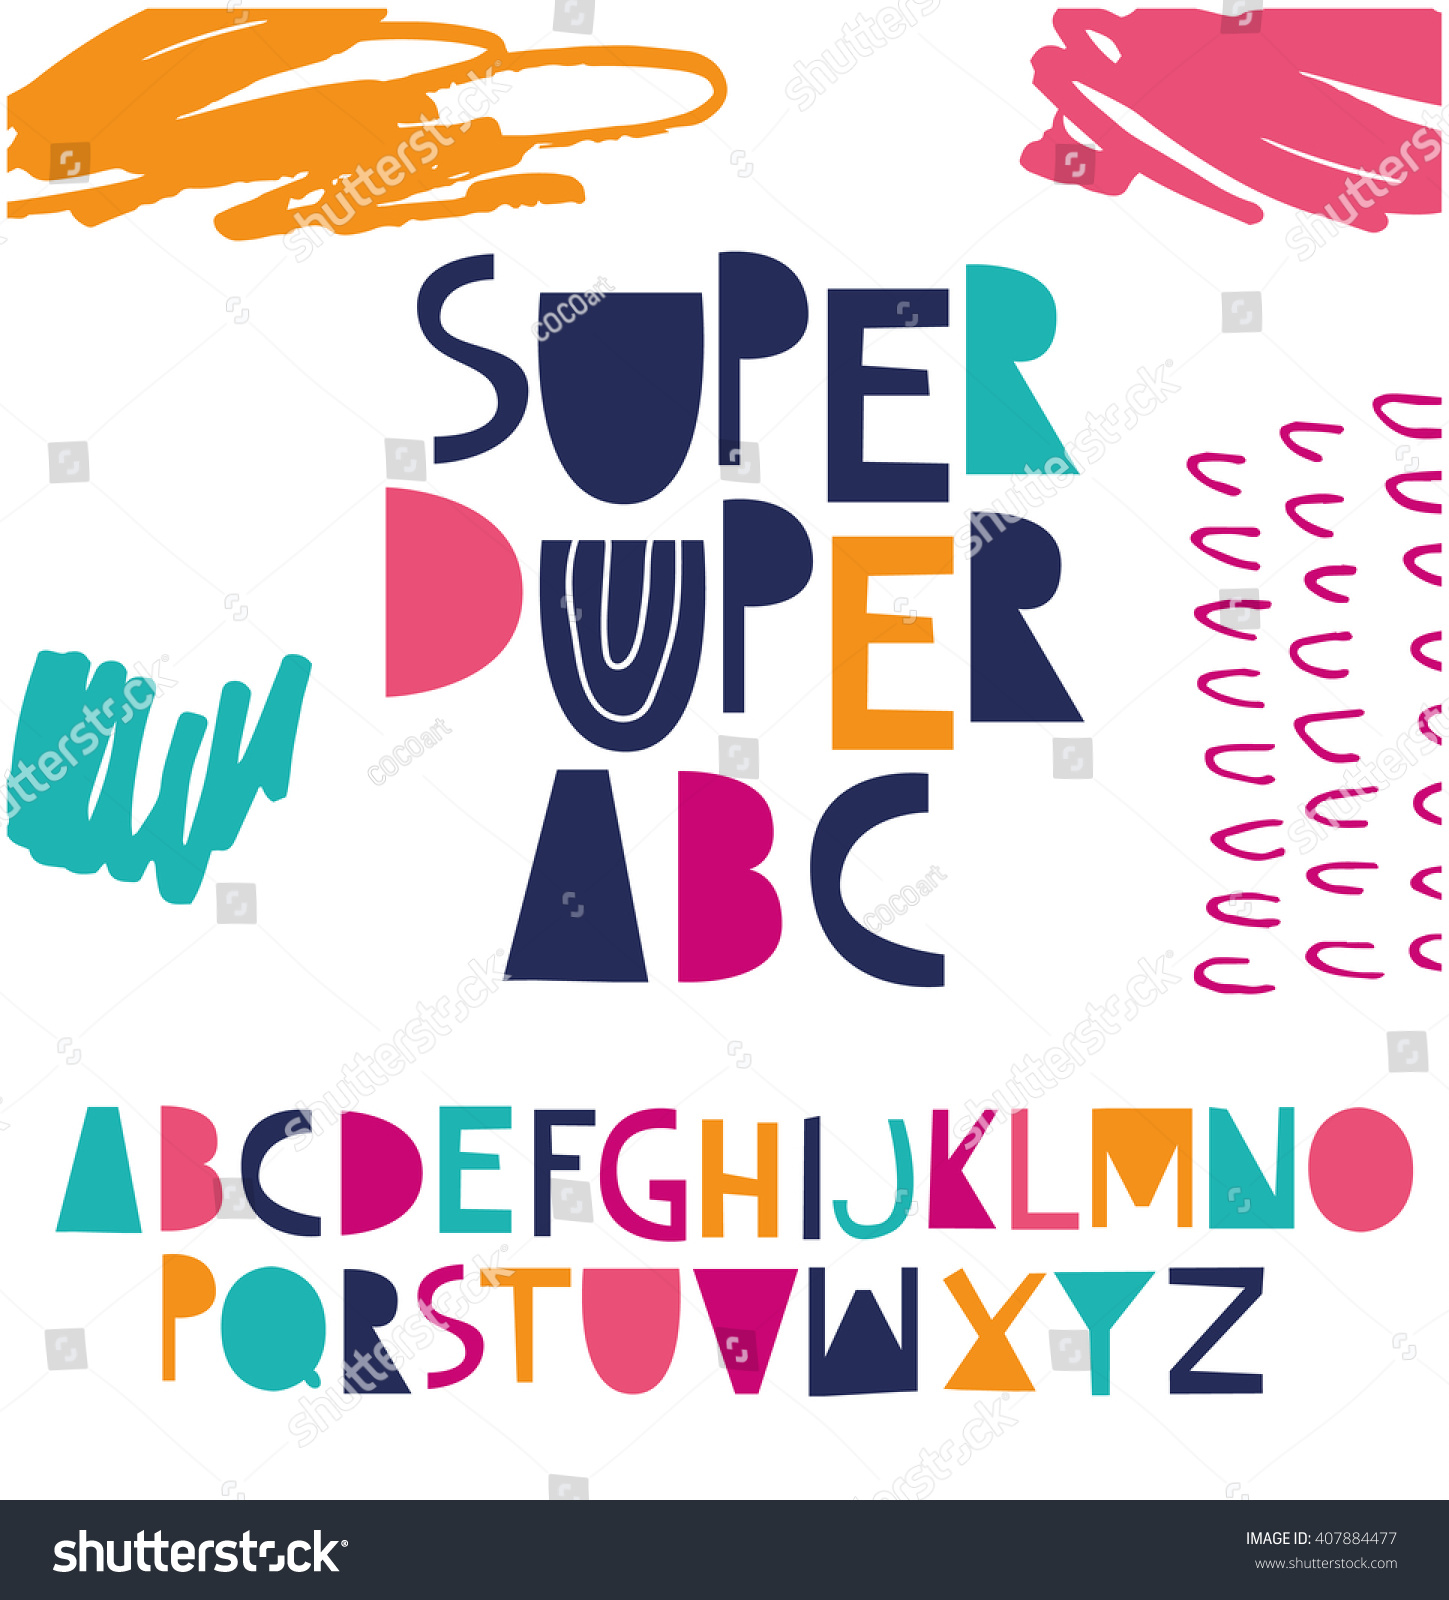 Funky ABC Your Design Vector de stock (libre de regalías)407884477 ...